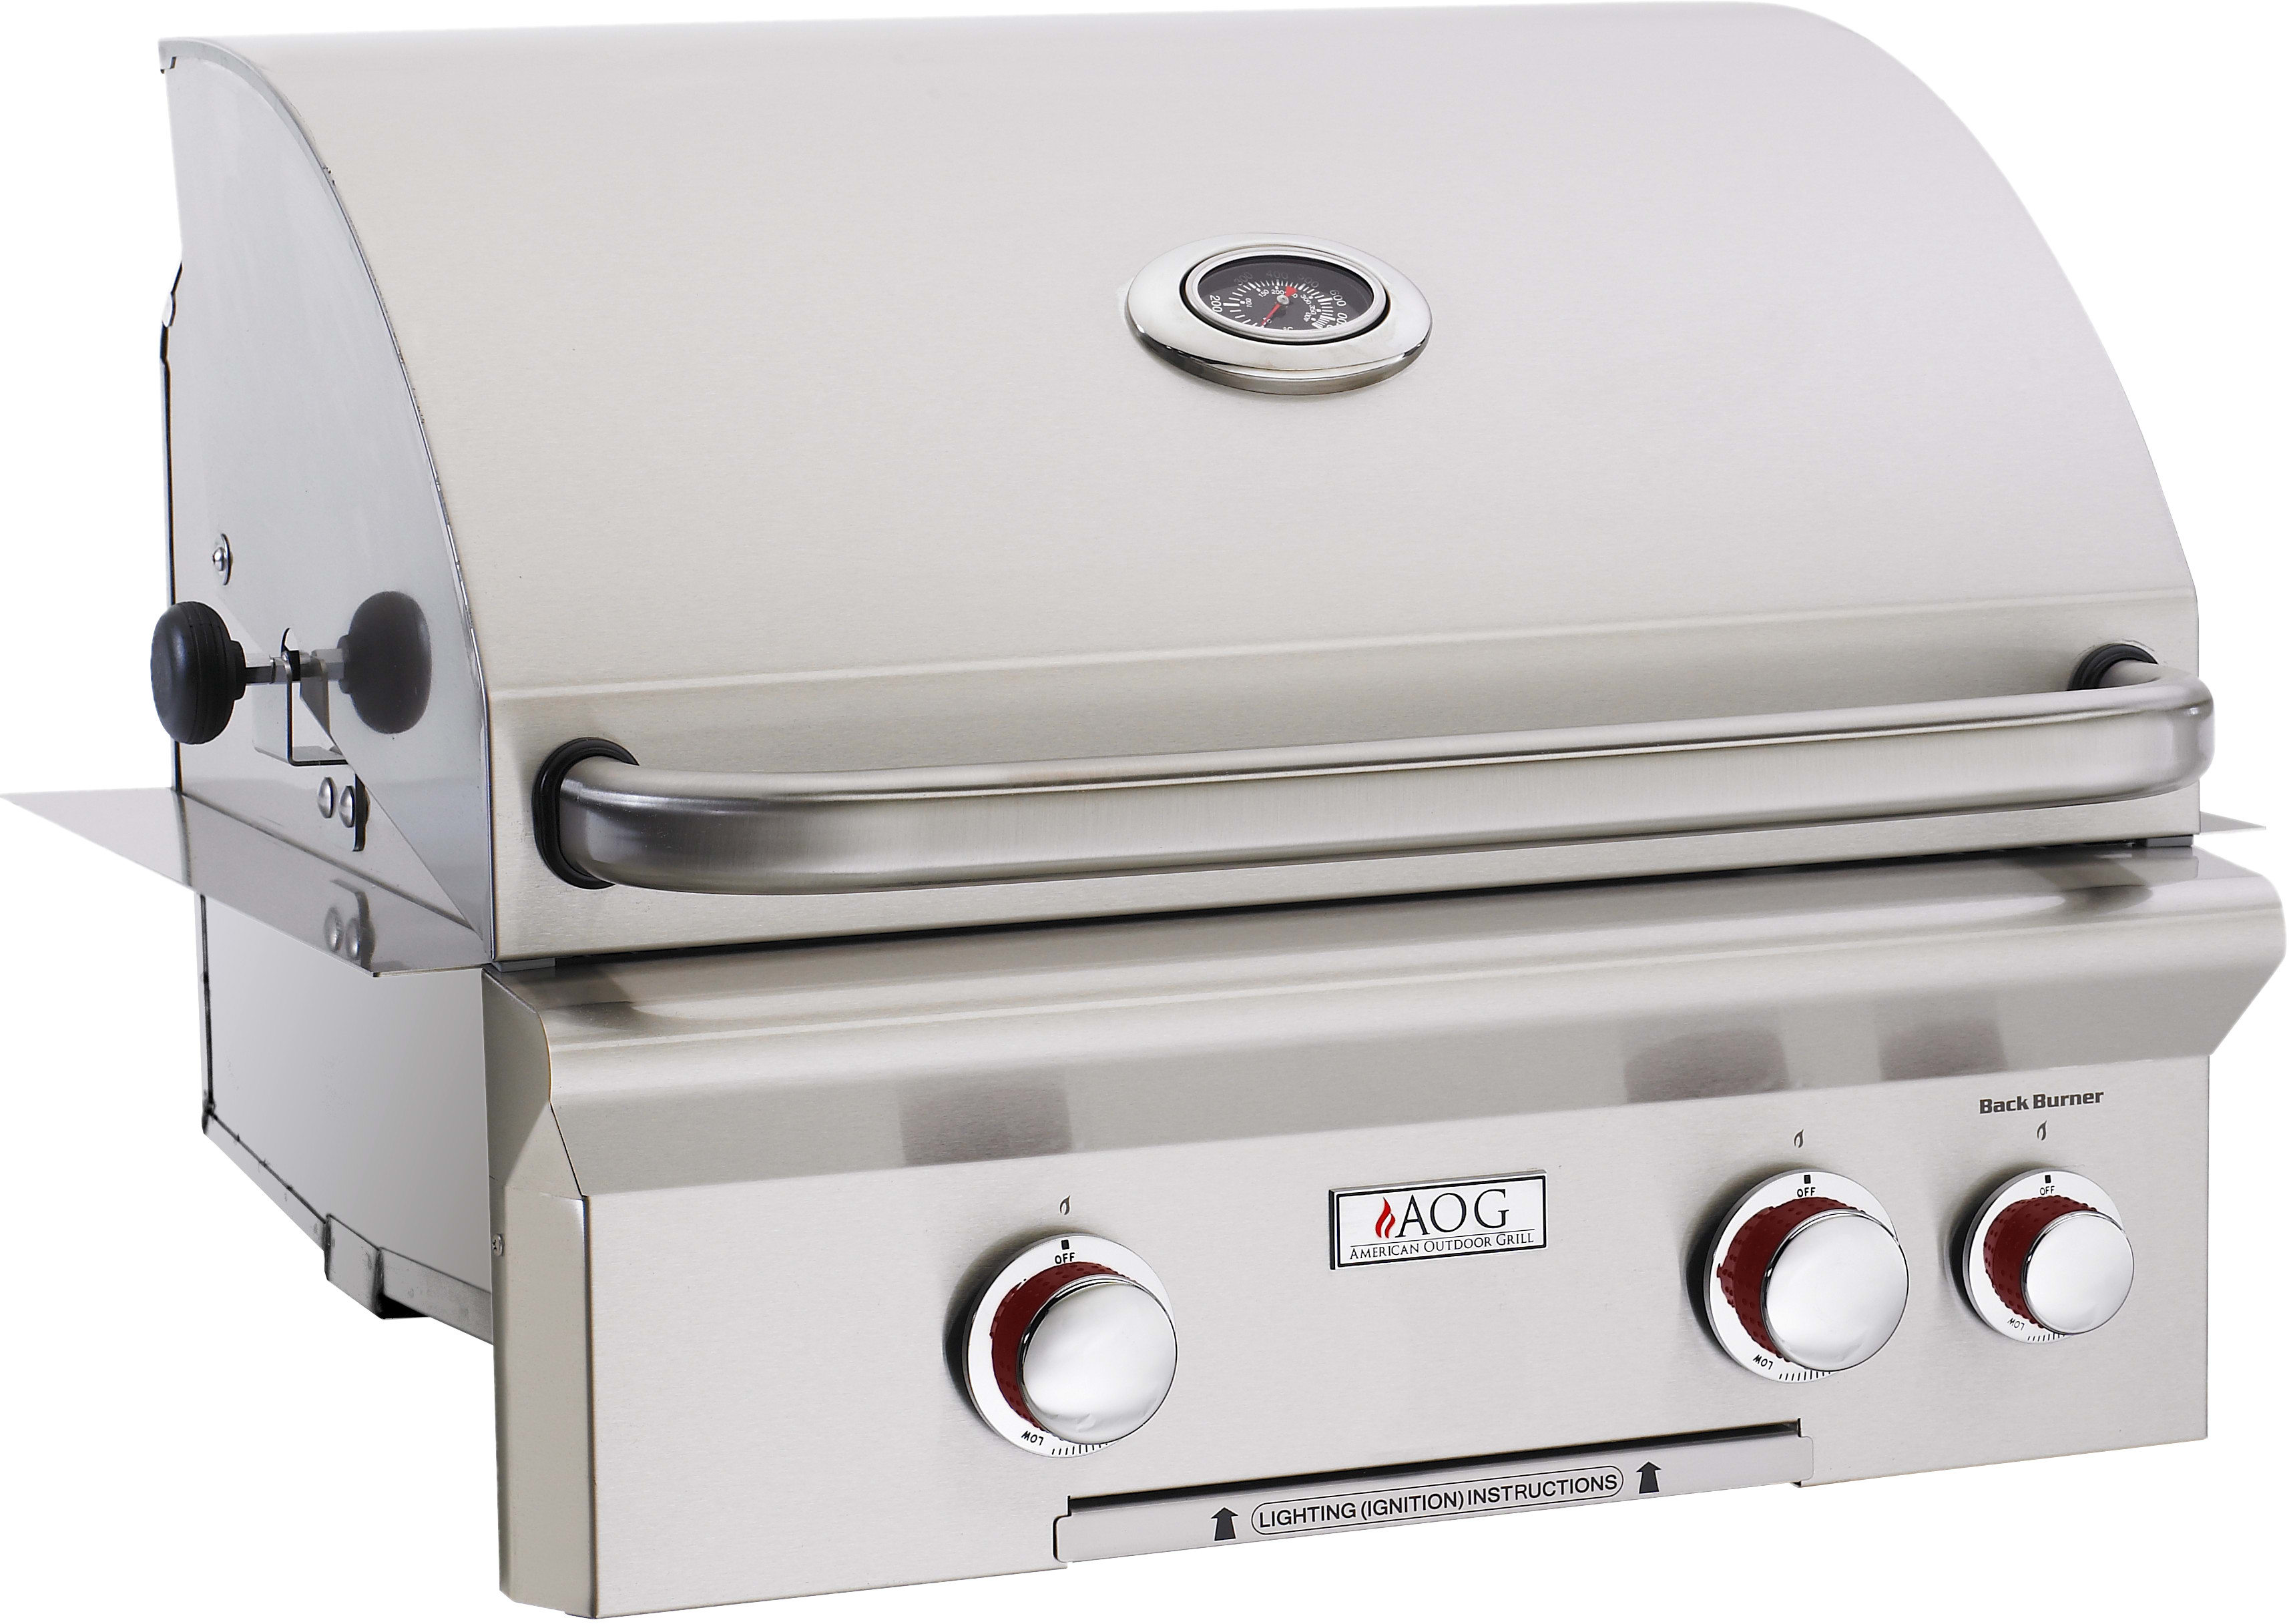 american outdoor grill 24nbt00sp 24 inch builtin gas grill with 432 sq in cooking surface 2 16000btu primary burners analog thermometer and stainless - Natural Gas Grill